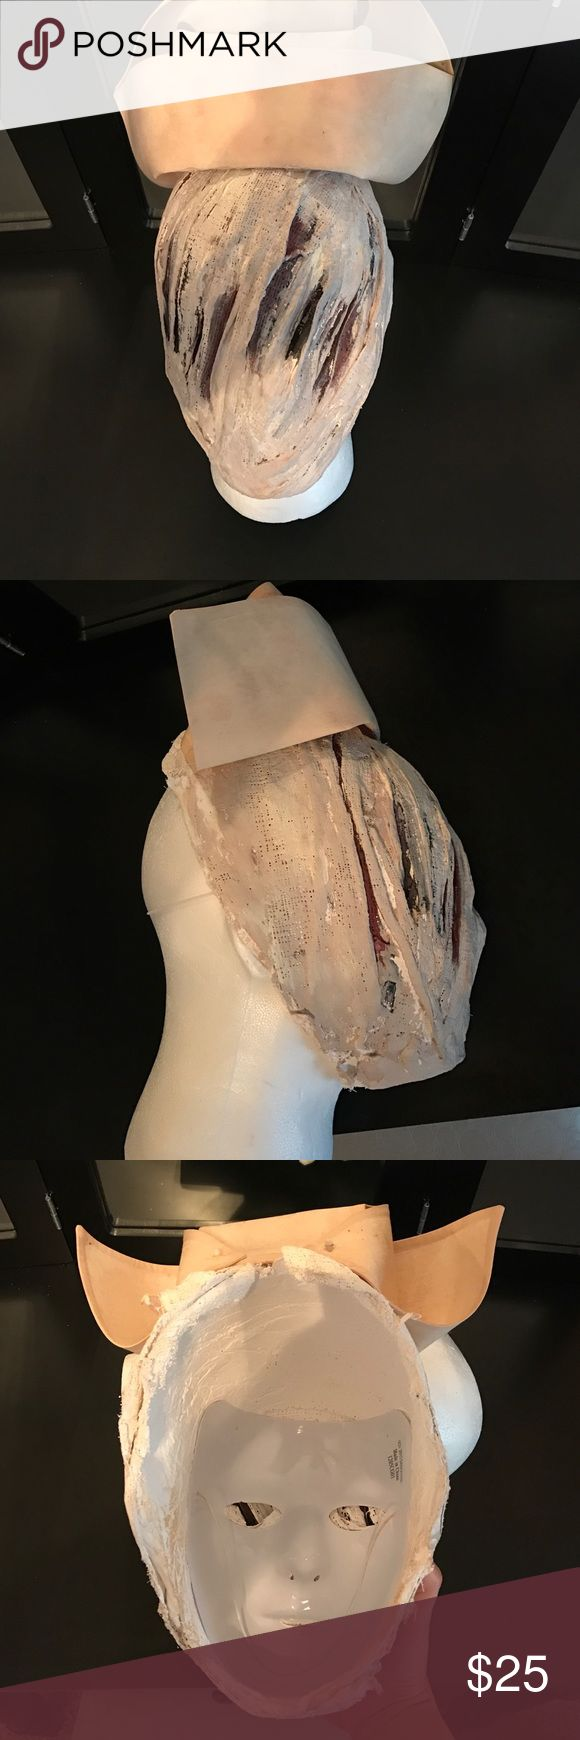 Silent Hill Nurse Mask This is a homemade costume. Silent Hill Nurse Mask. Items being listed separately, discount for bundling the entire costume! Only worn once for a party. Other